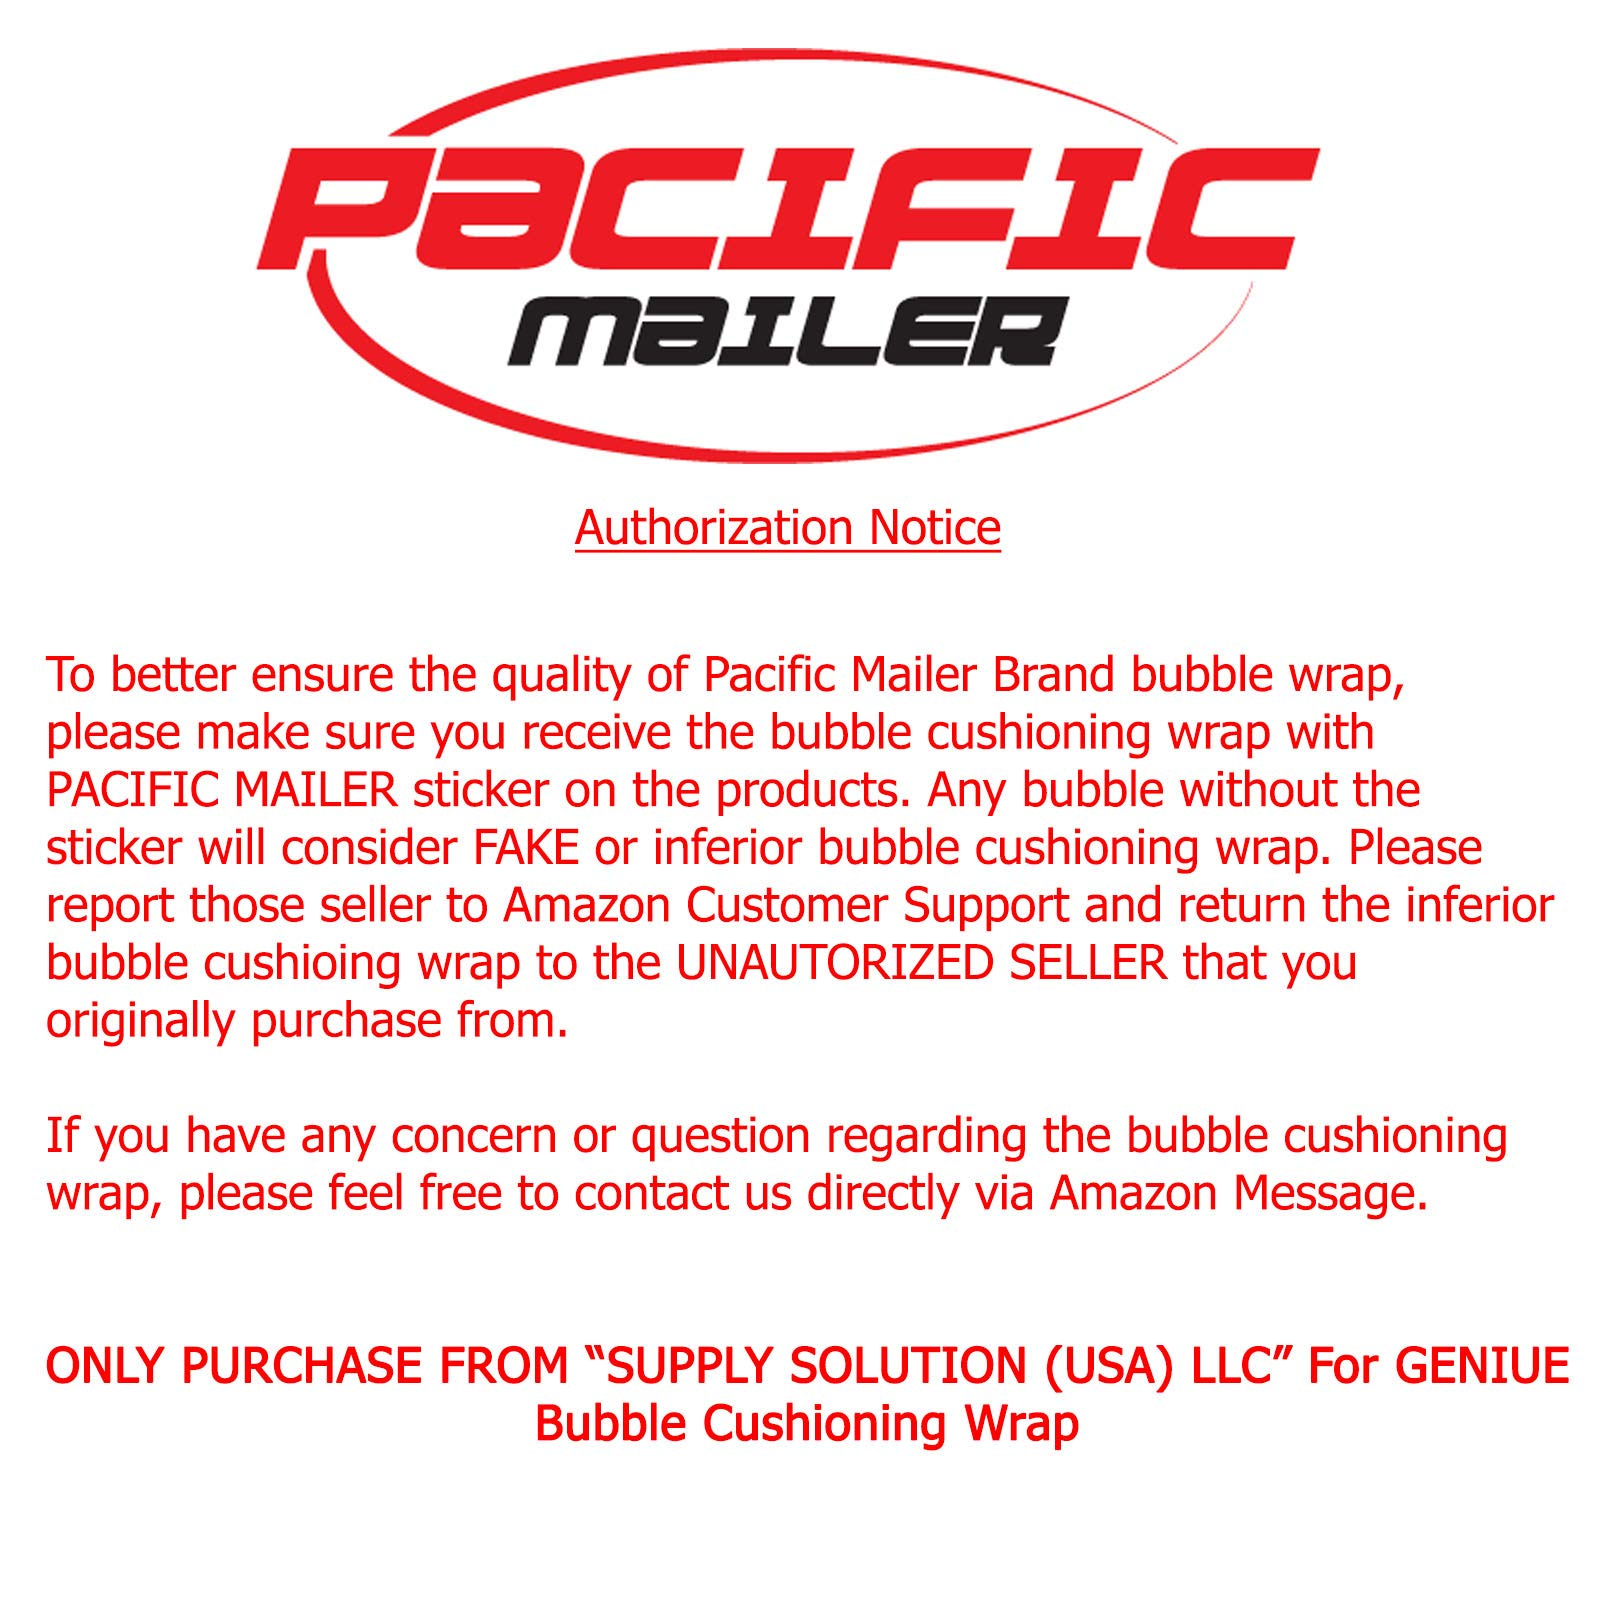 PacificMailer Bubble Cushioning Wrap Roll 12'' x 250' x 1/2'' Large, Perforated Every 12'' for Packaging, Shipping, Mailing by PacificMailer (Image #3)